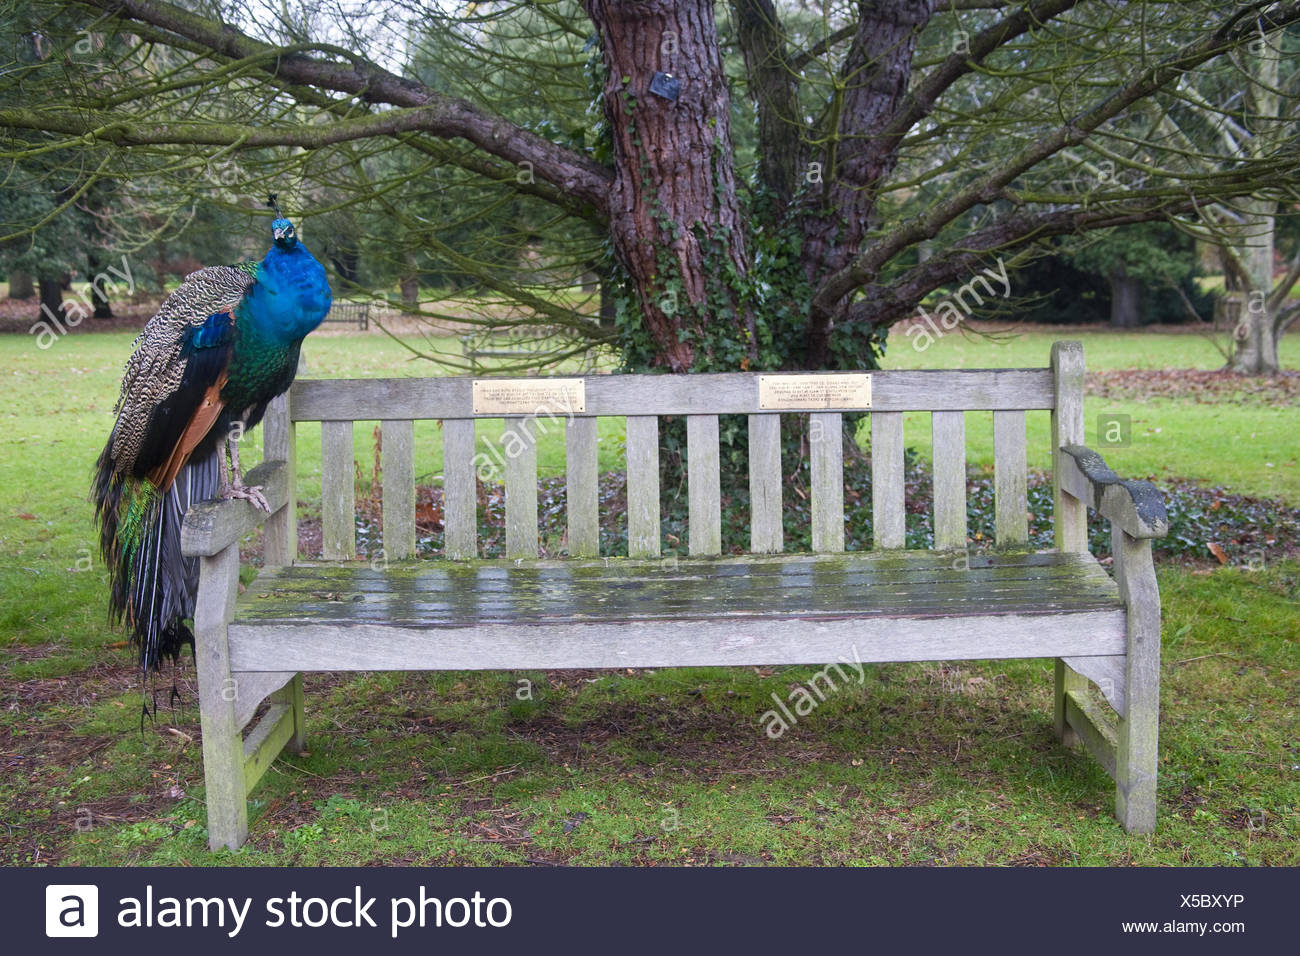 wooden bank, peacock, sit, animal, gallinaceous birds, feathers, brightly, nature, outside, park, little man, Phasianidae, Phasianidae, - Stock Image